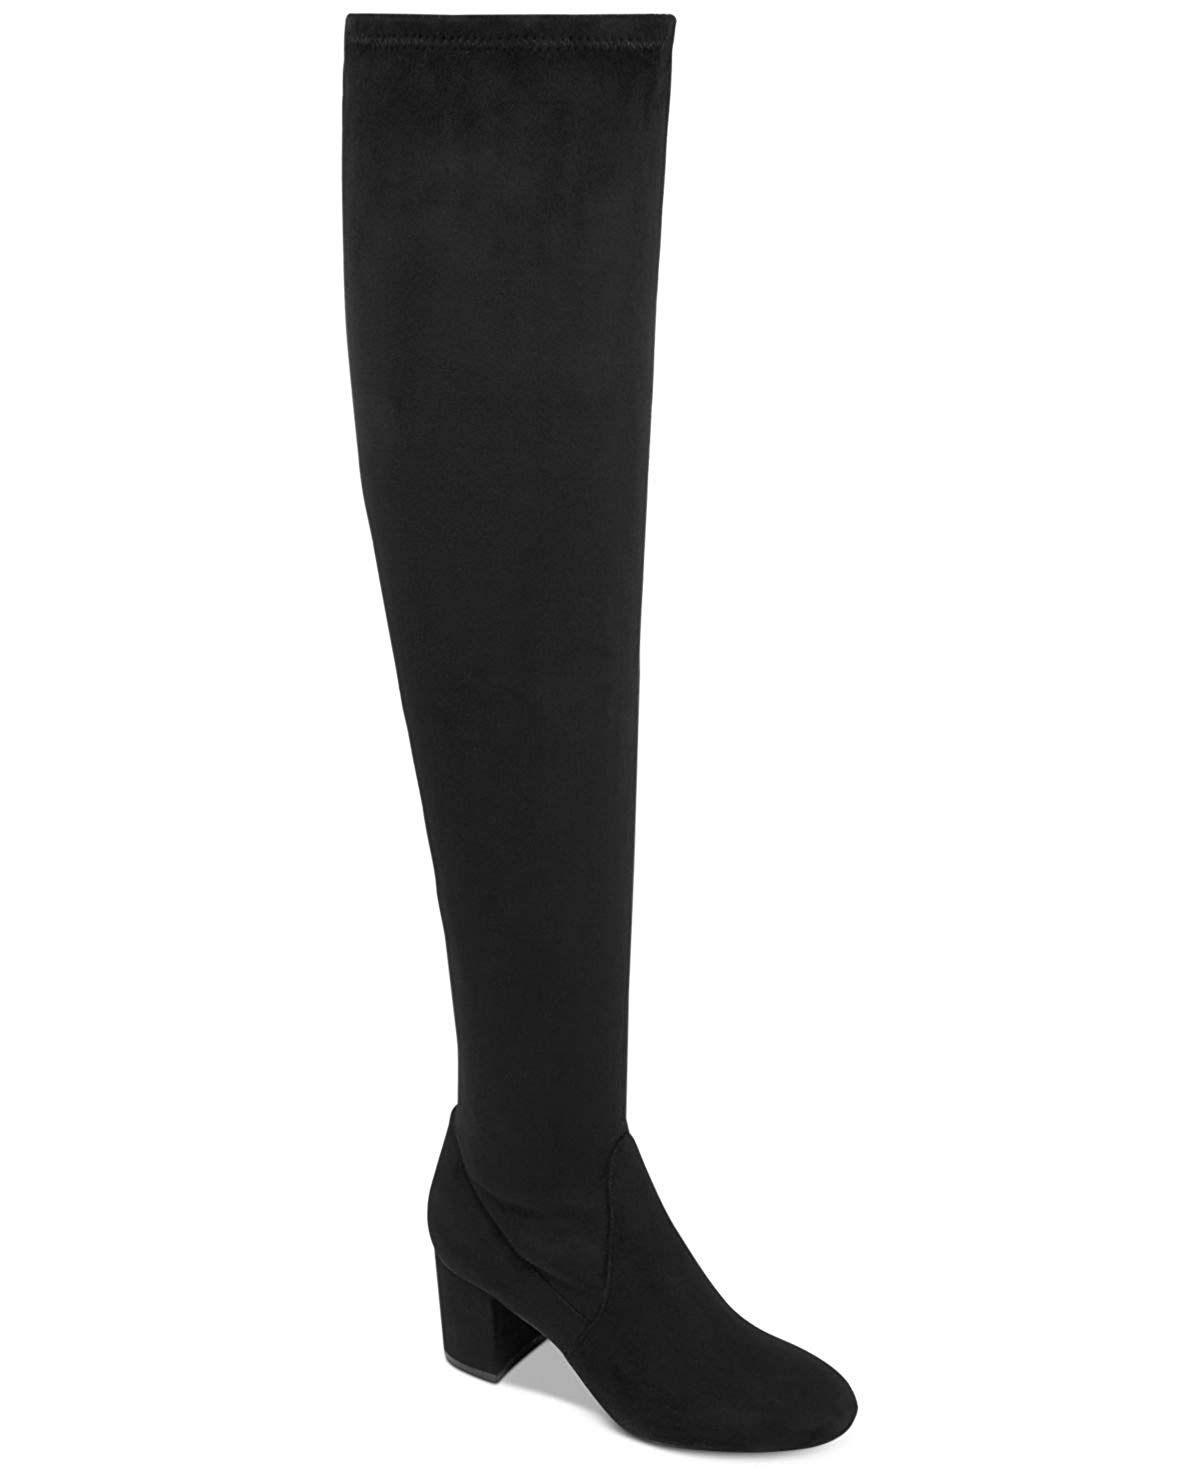 789bac72517 INC International Concepts Womens Rikkie Over-The-Knee Boots Black 7M --  Very